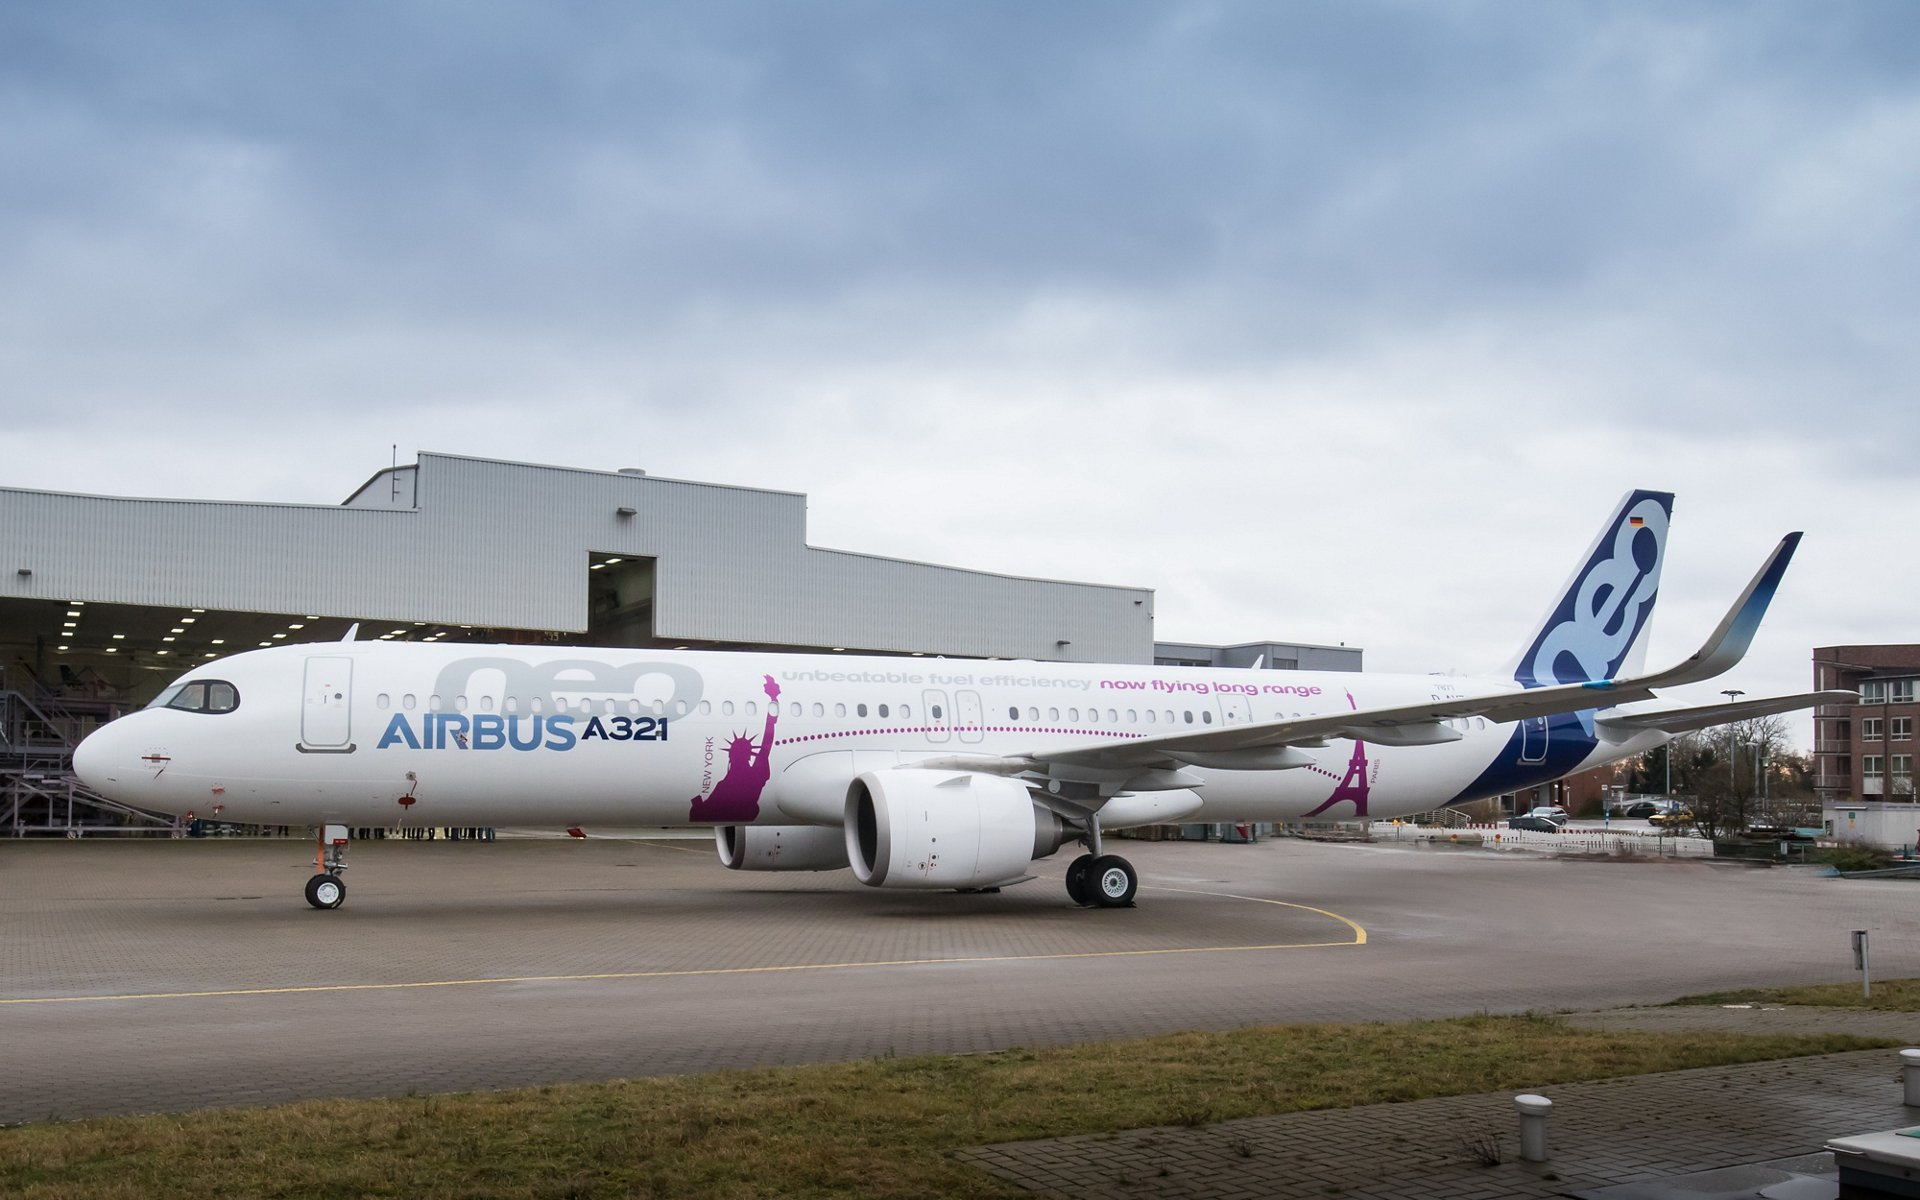 Airbus rolls out its first A321neo ACF (Airbus Cabin Flex) in Hamburg with the Eiffel Tower in Paris and the Statue of Liberty in New York illustrating its transatlantic flight capability on its livery